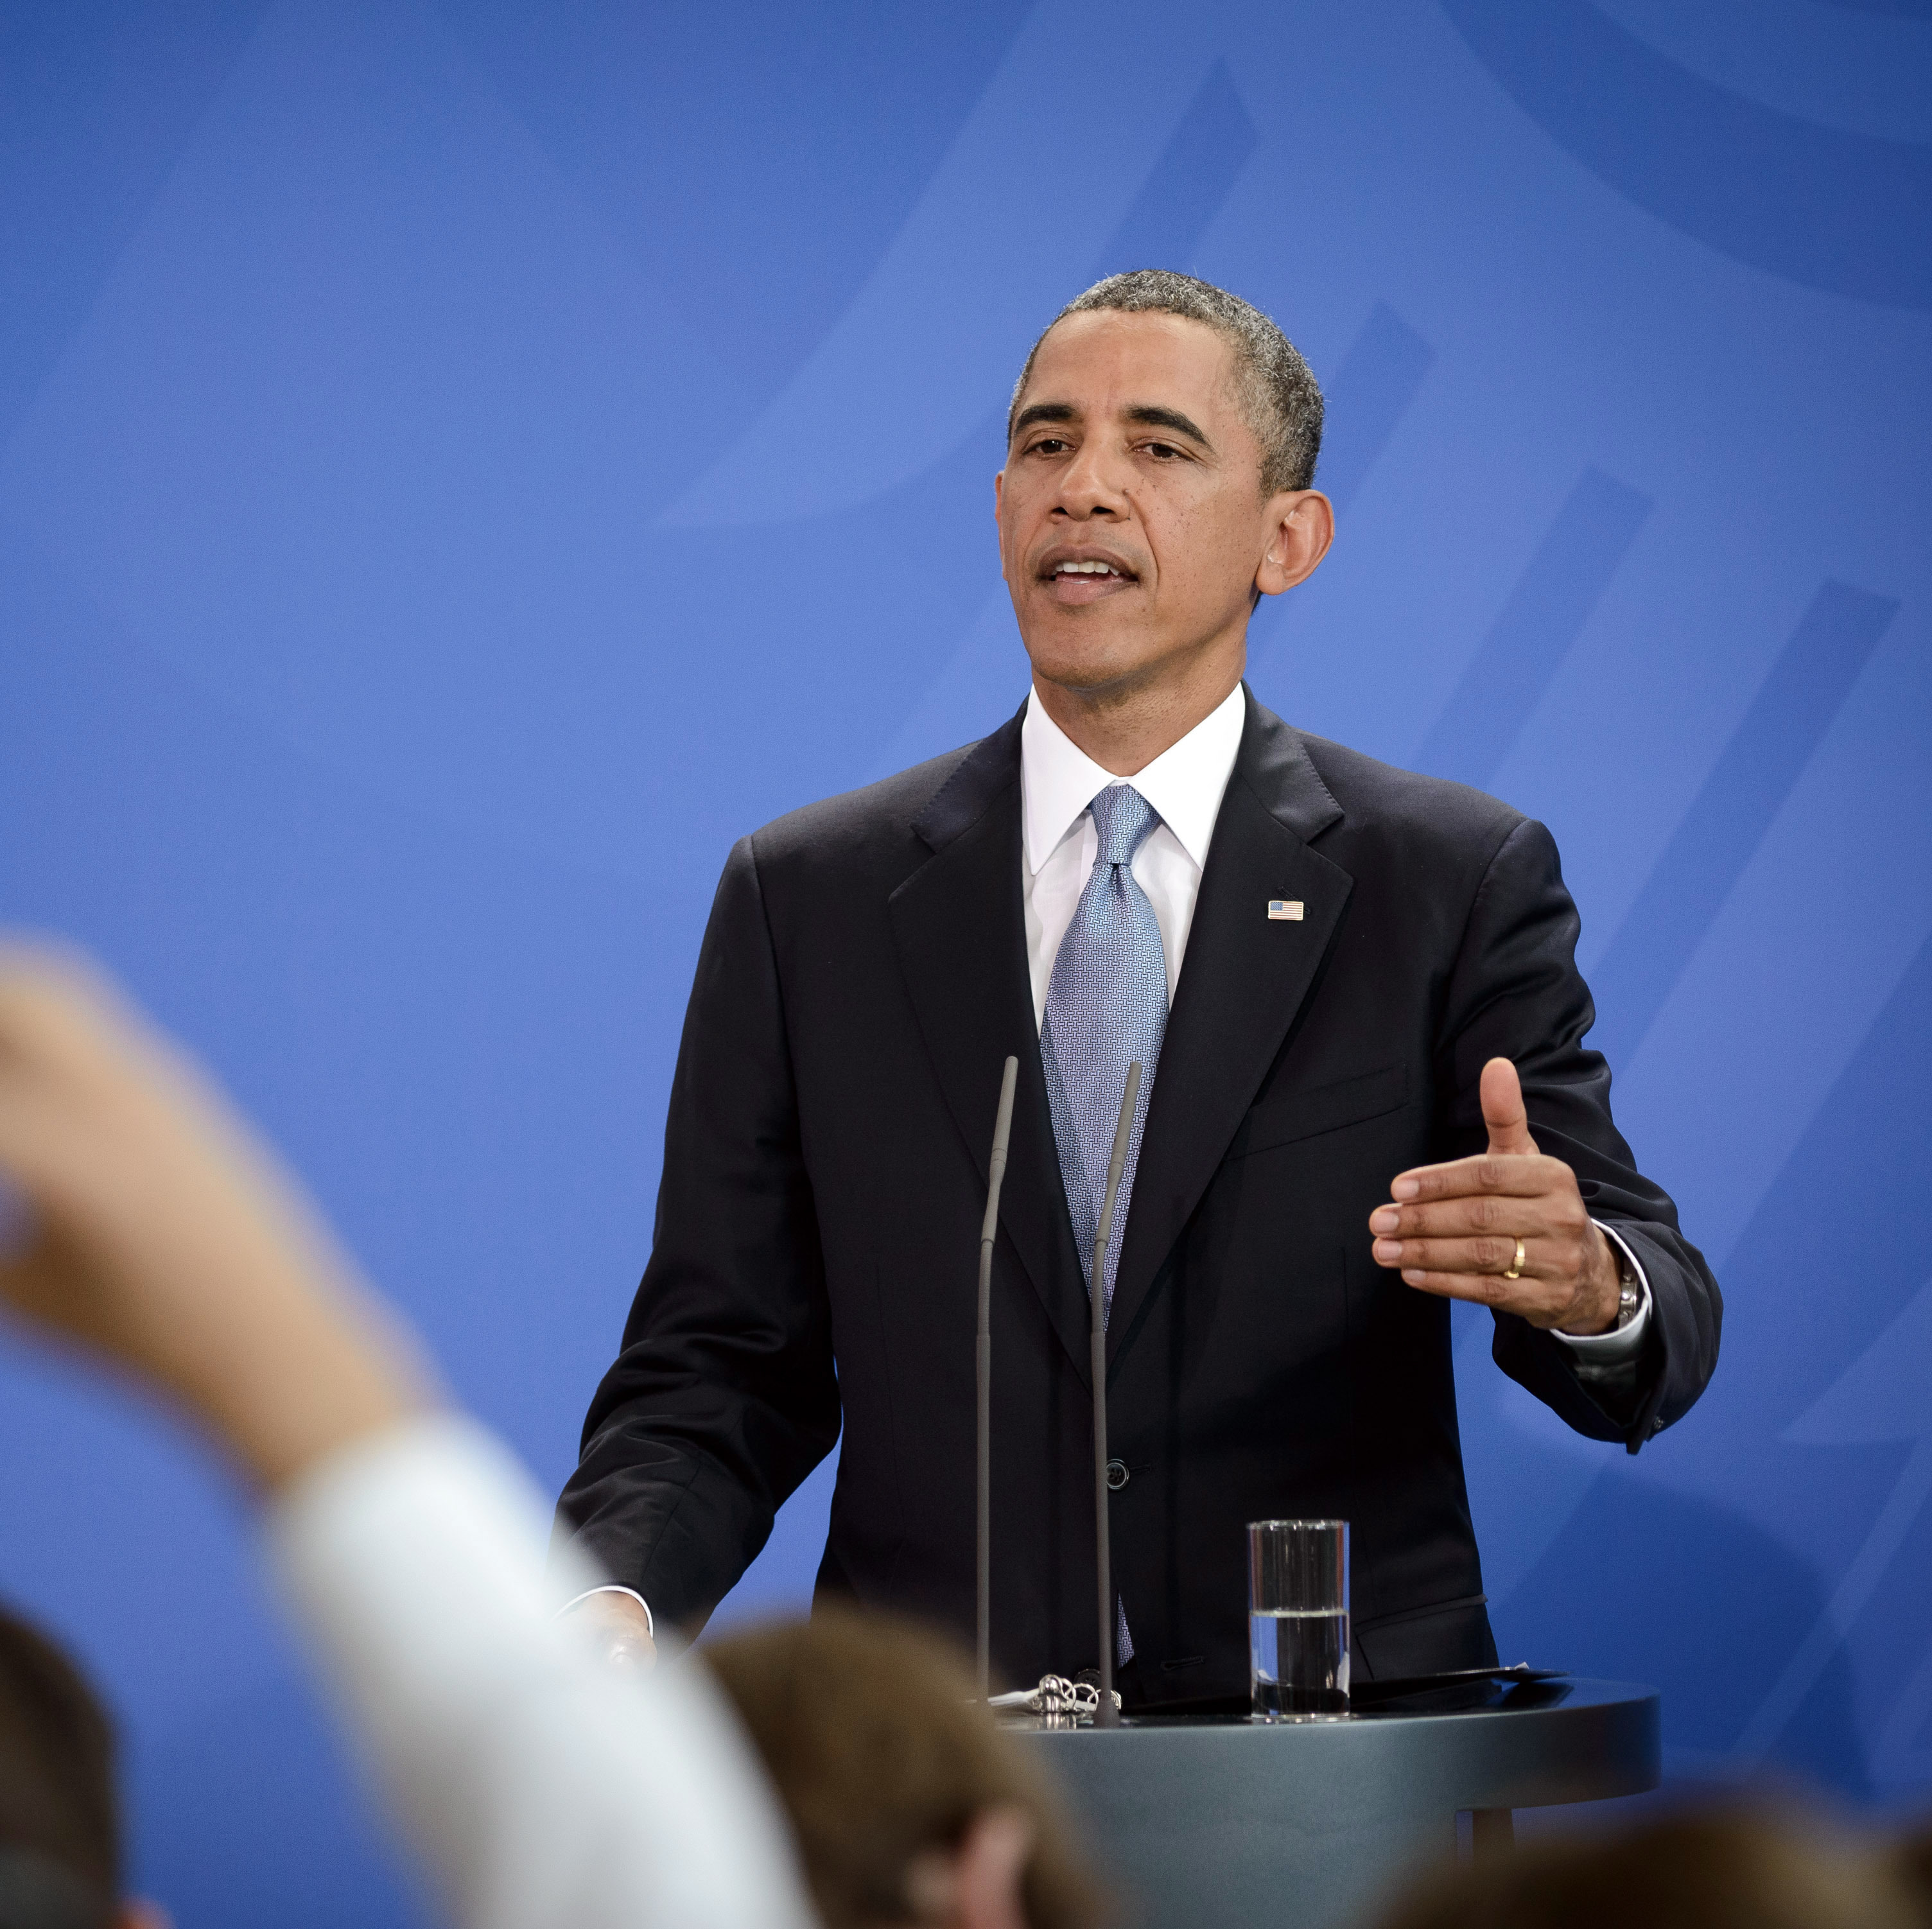 President Obama speaks to the media following bilateral talks with German Chancellor Angela Merkel in Berlin.